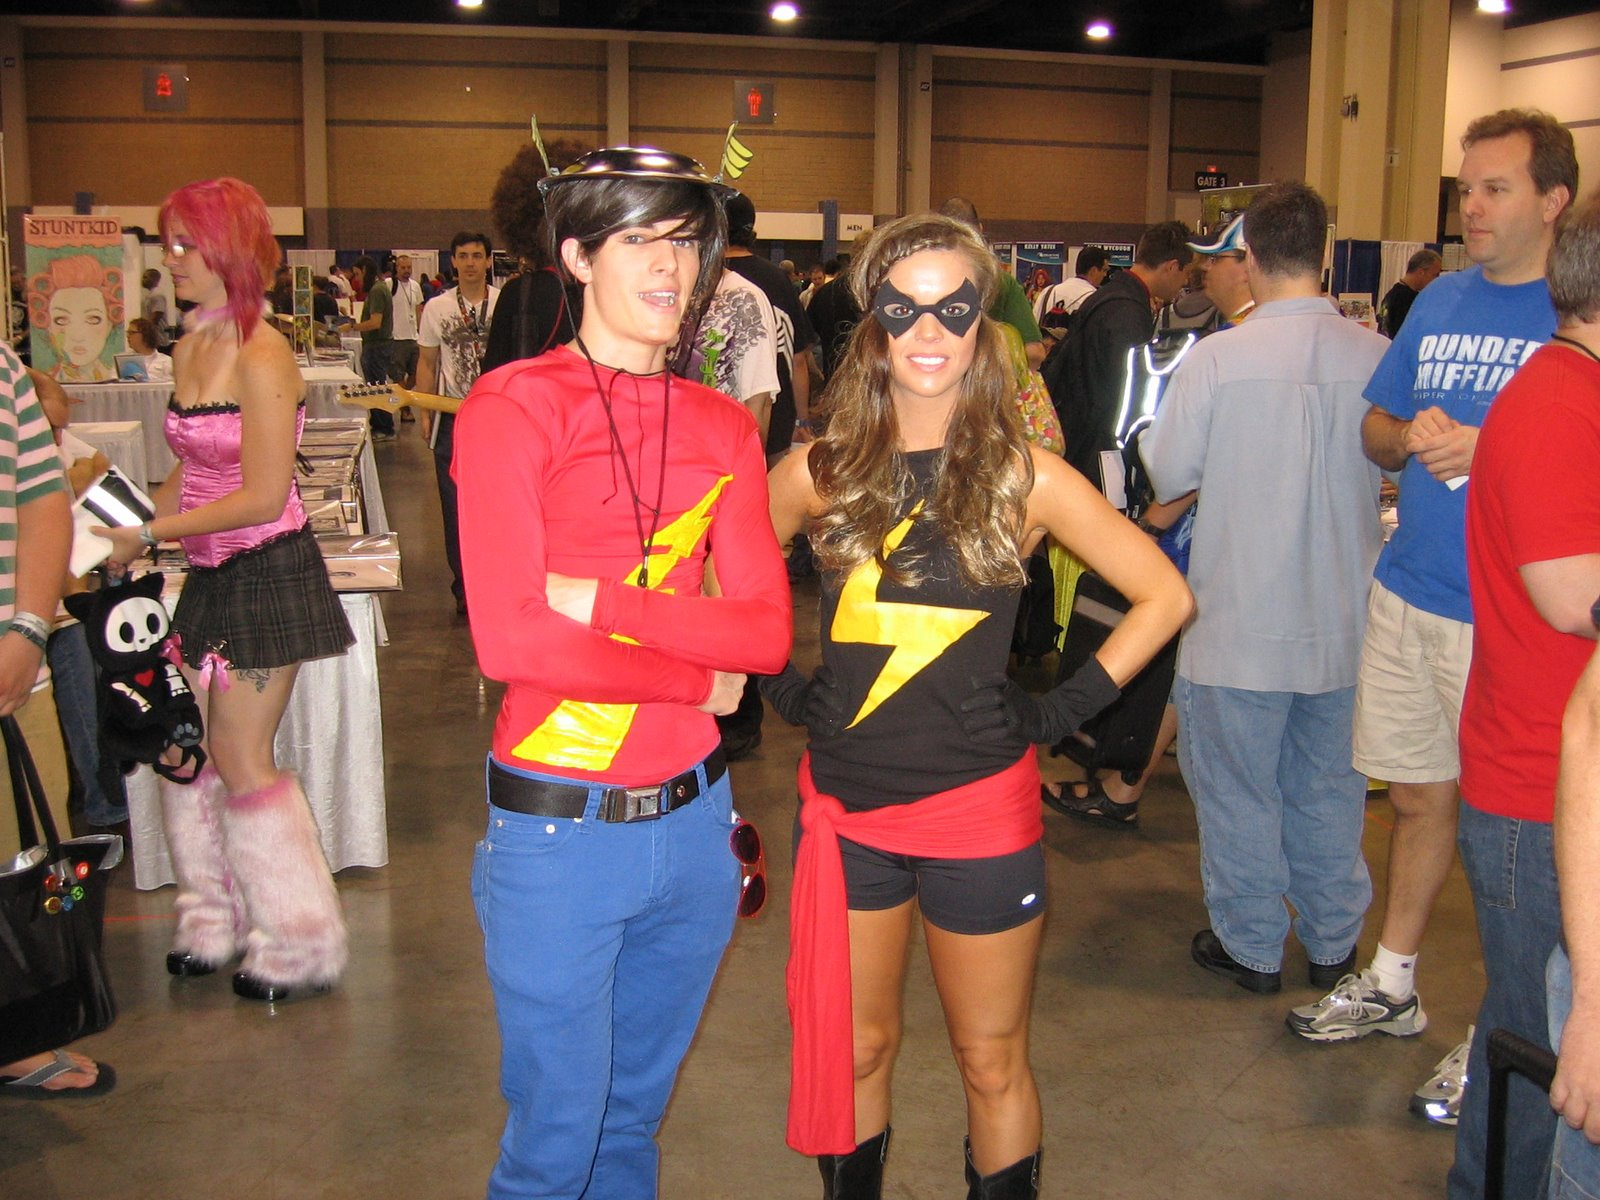 Ms marvel costume five nights at freddys costumes for sale view